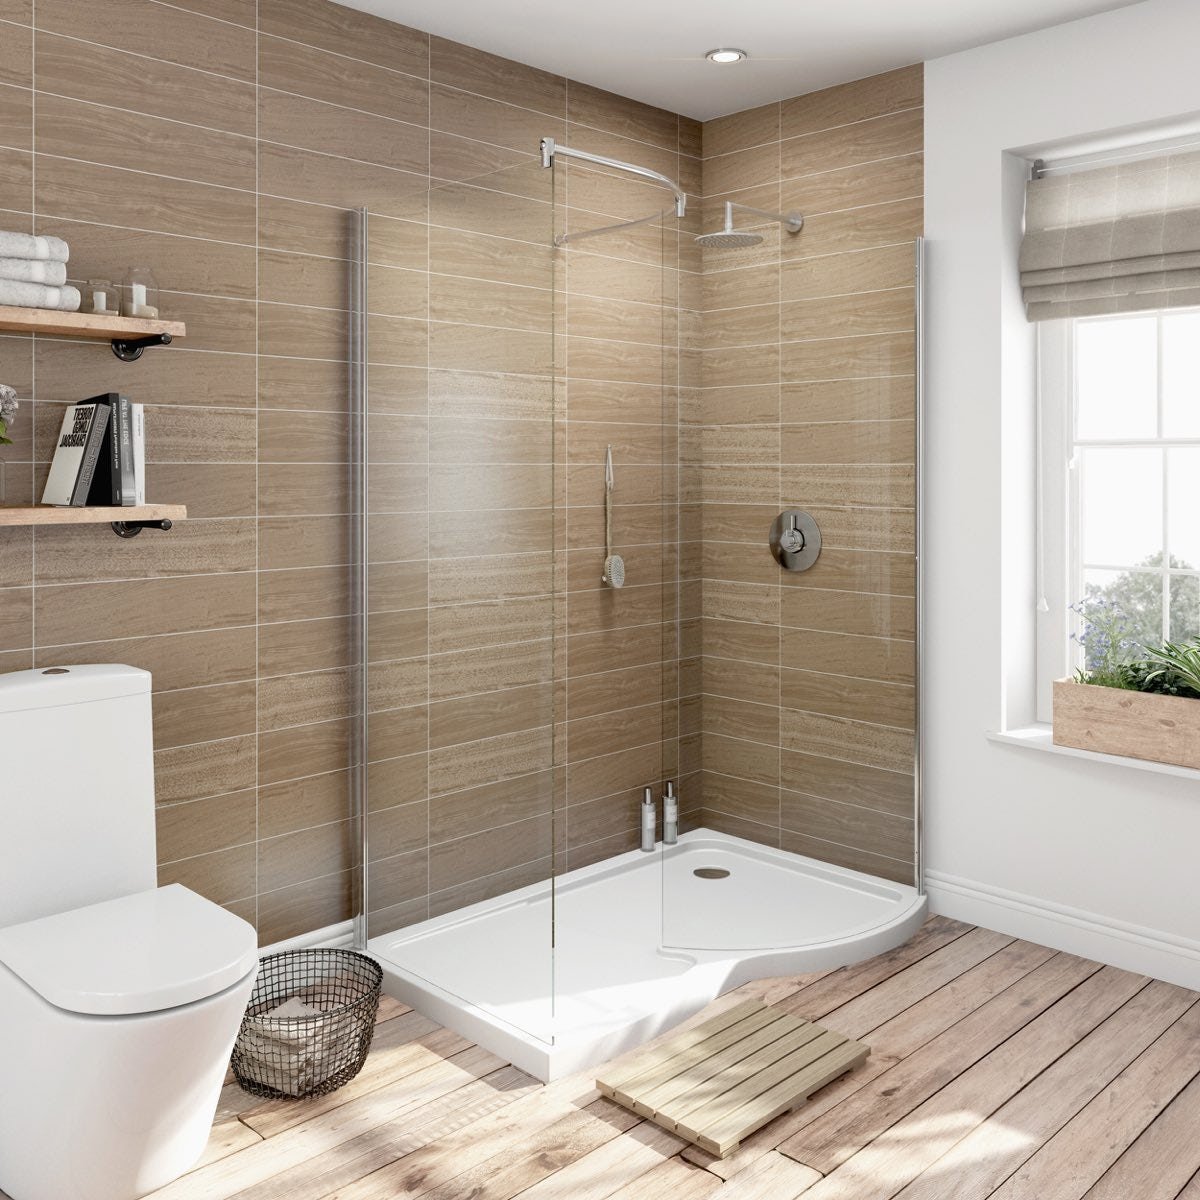 6mm Curved RH Walk In Shower Enclosure With Tray 1400x900  VictoriaPlumcom